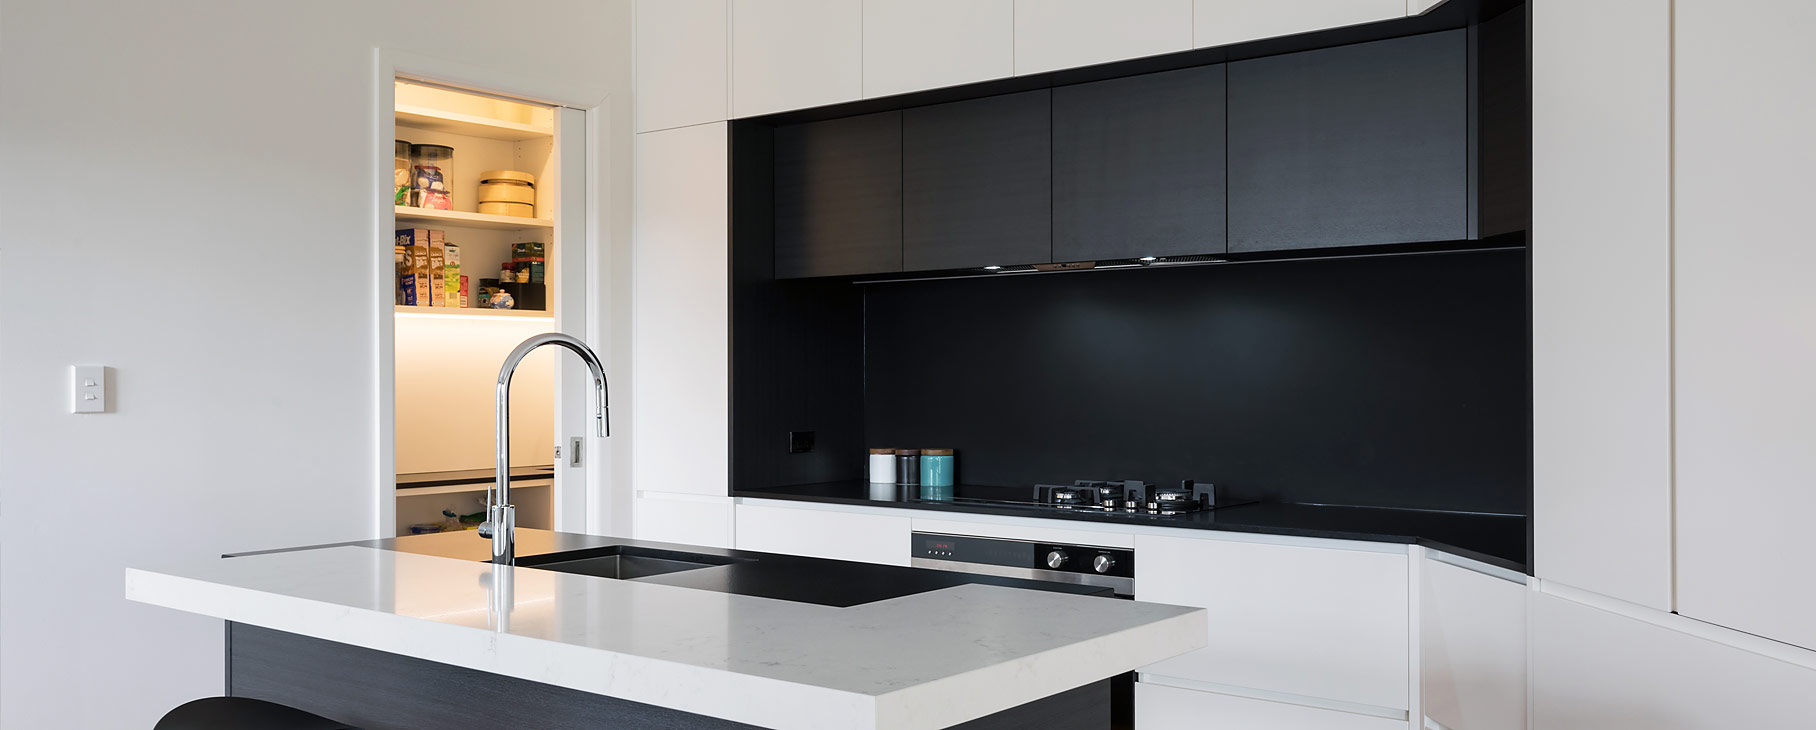 Top Quality Kitchen Design NZ   Bathrooms & Joinery   Neo Design